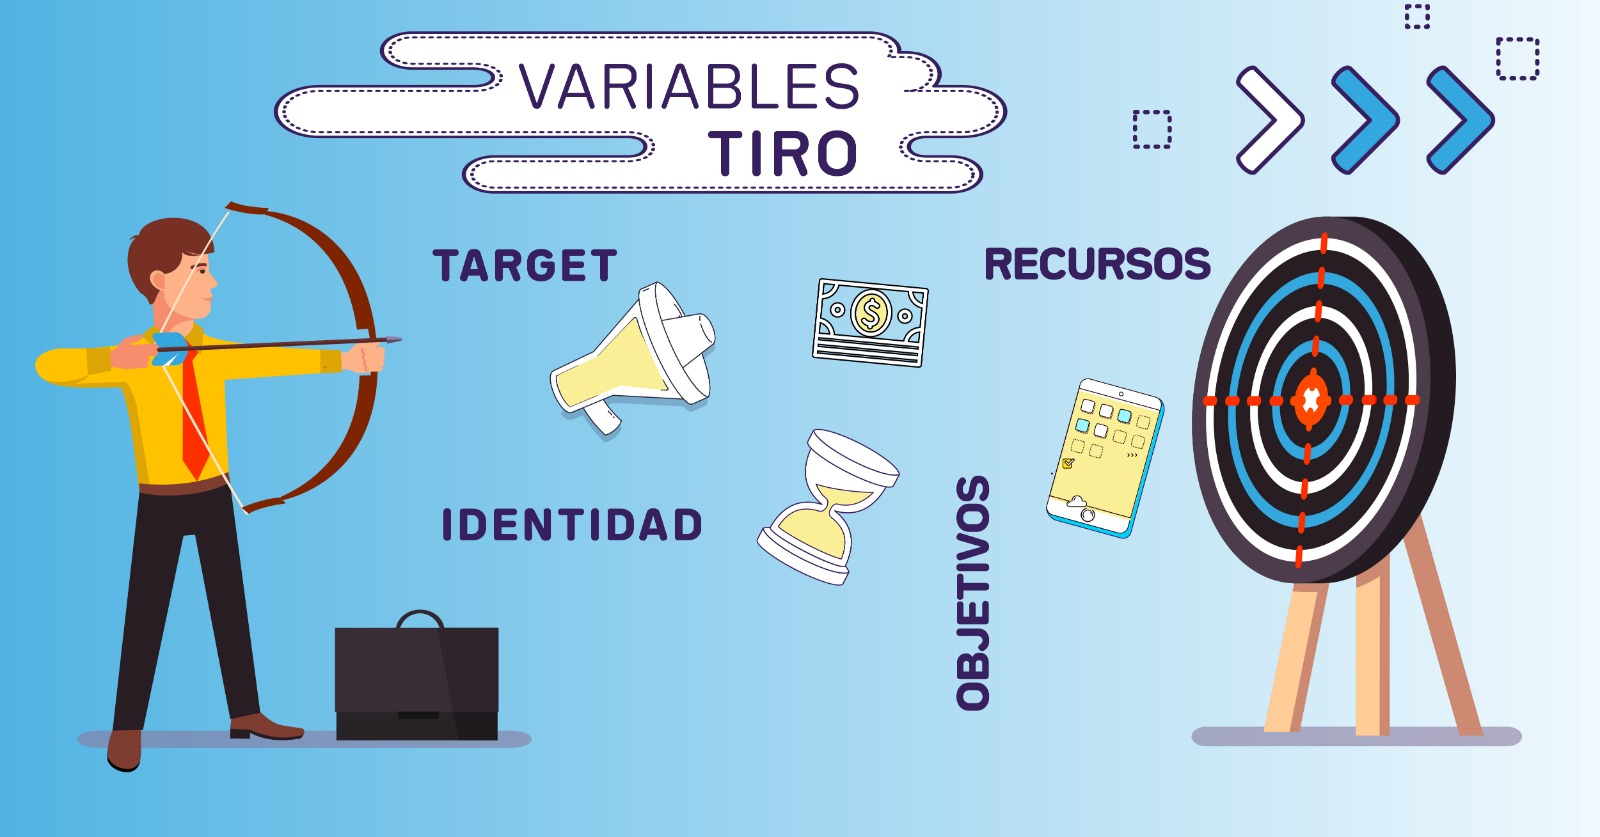 Crea una buena estrategia de Marketing a través de las variables TIRO